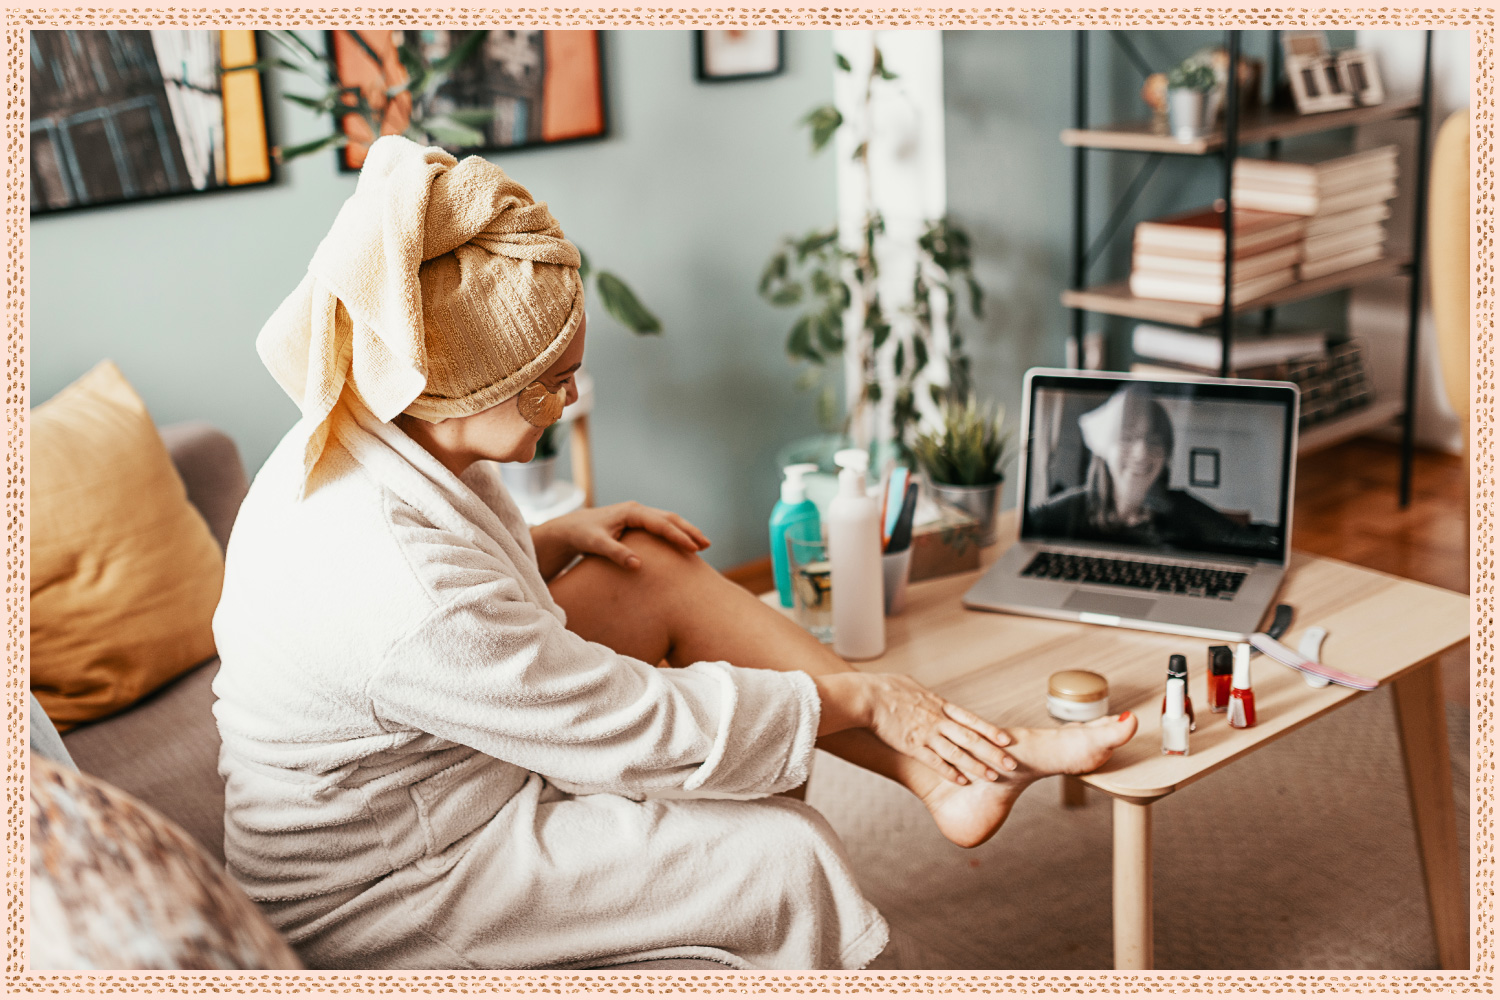 woman with towel on head and face mask on video chatting her friend on her laptop